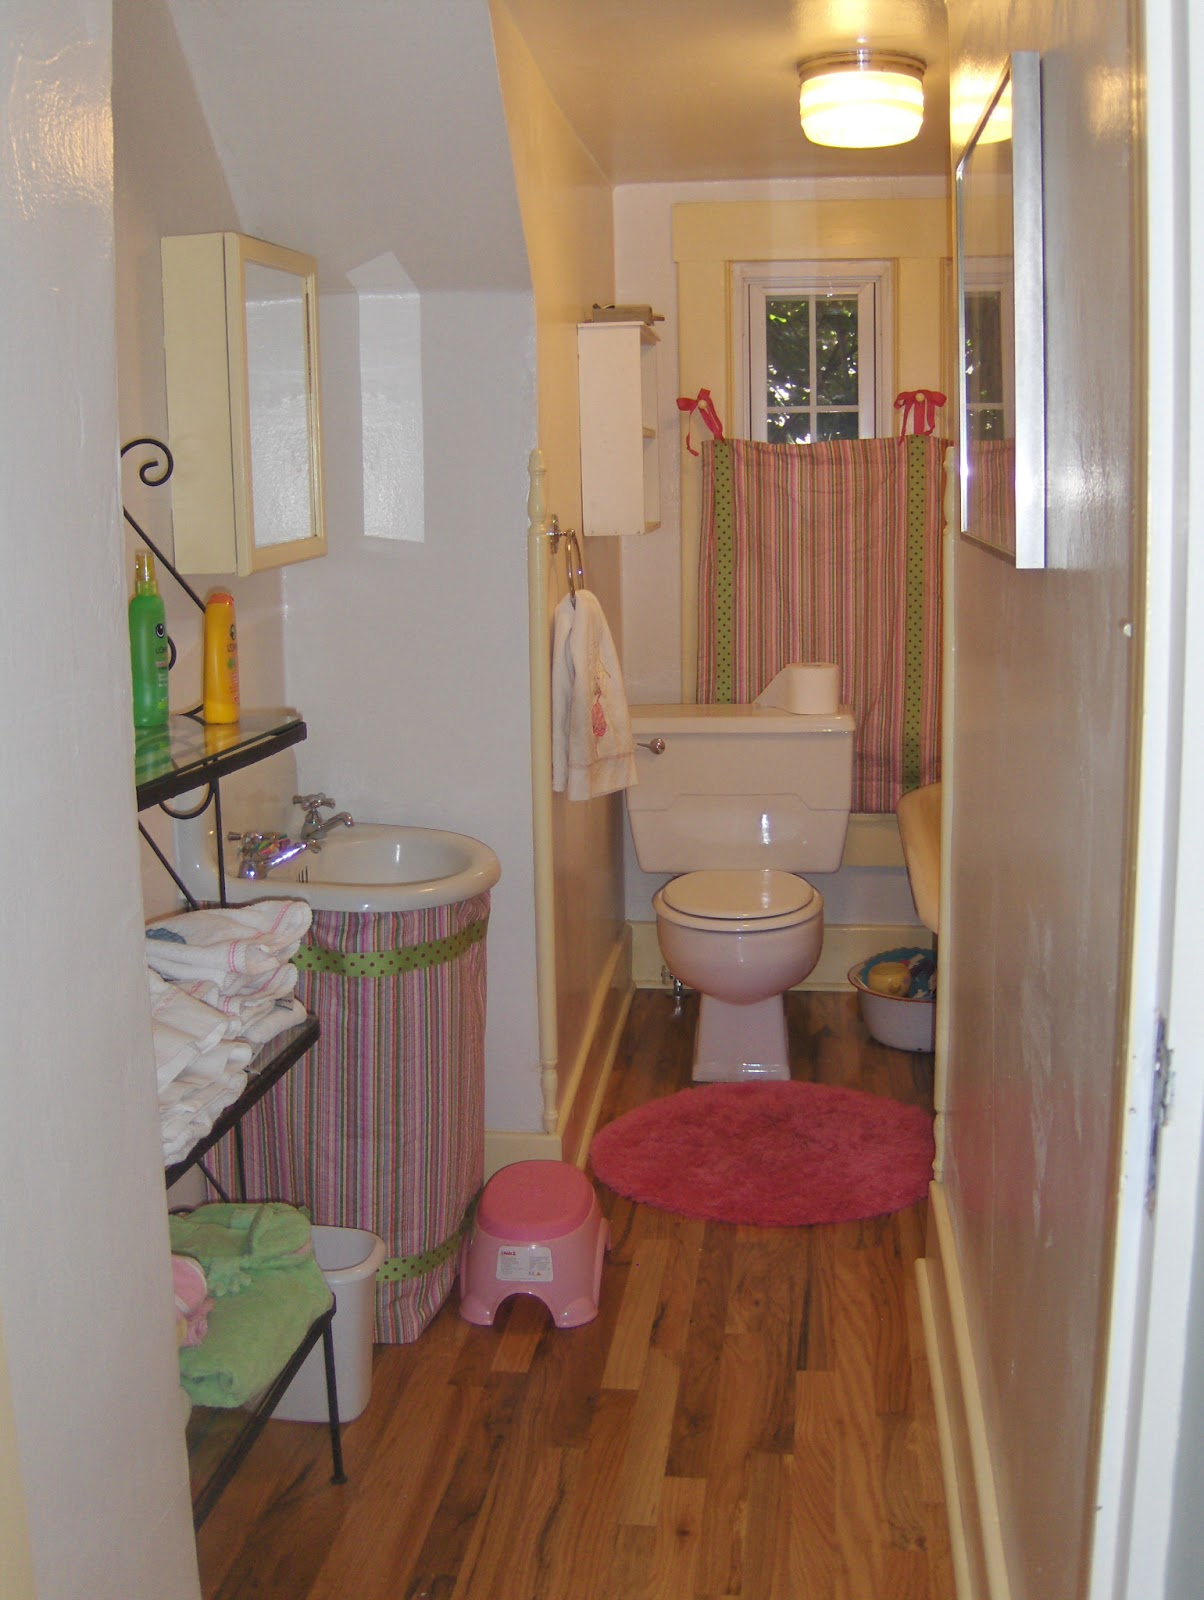 A marmie life very small bathroom remodel for Small bathroom remodel designs